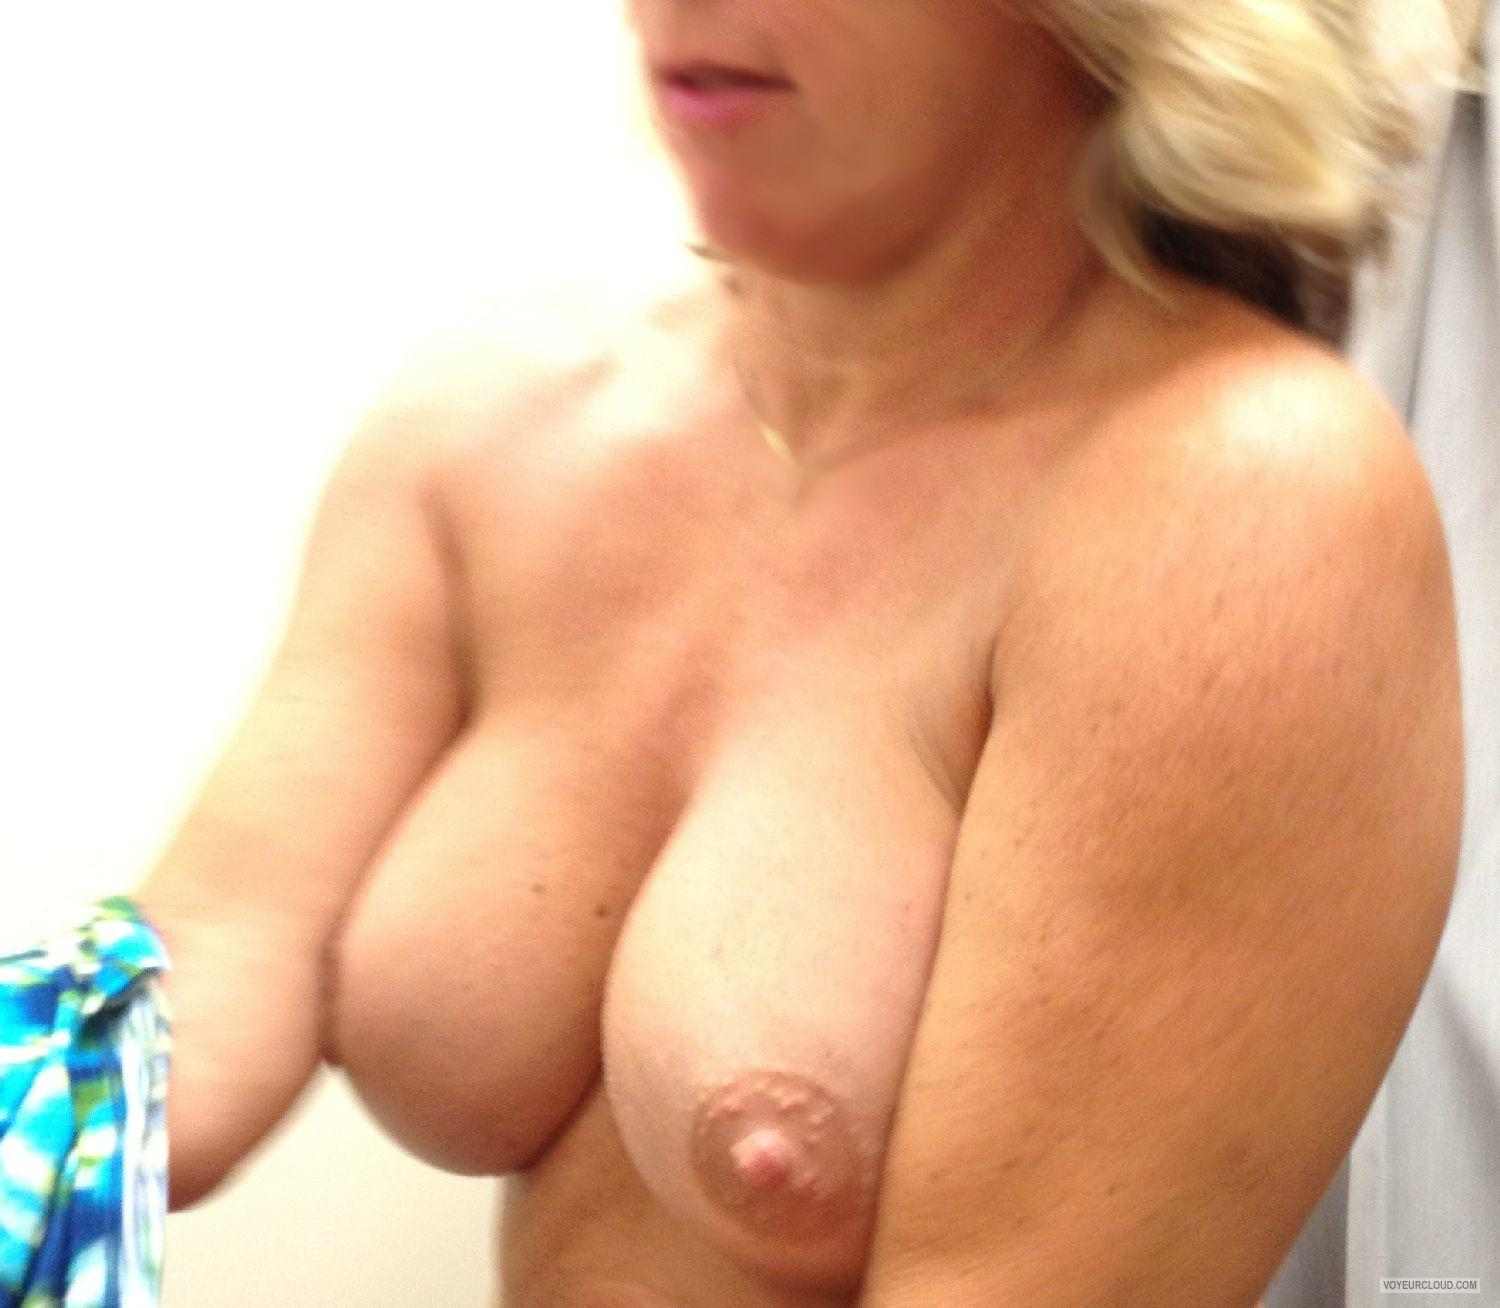 Tit Flash: Wife's Big Tits - Summer Sun from United States